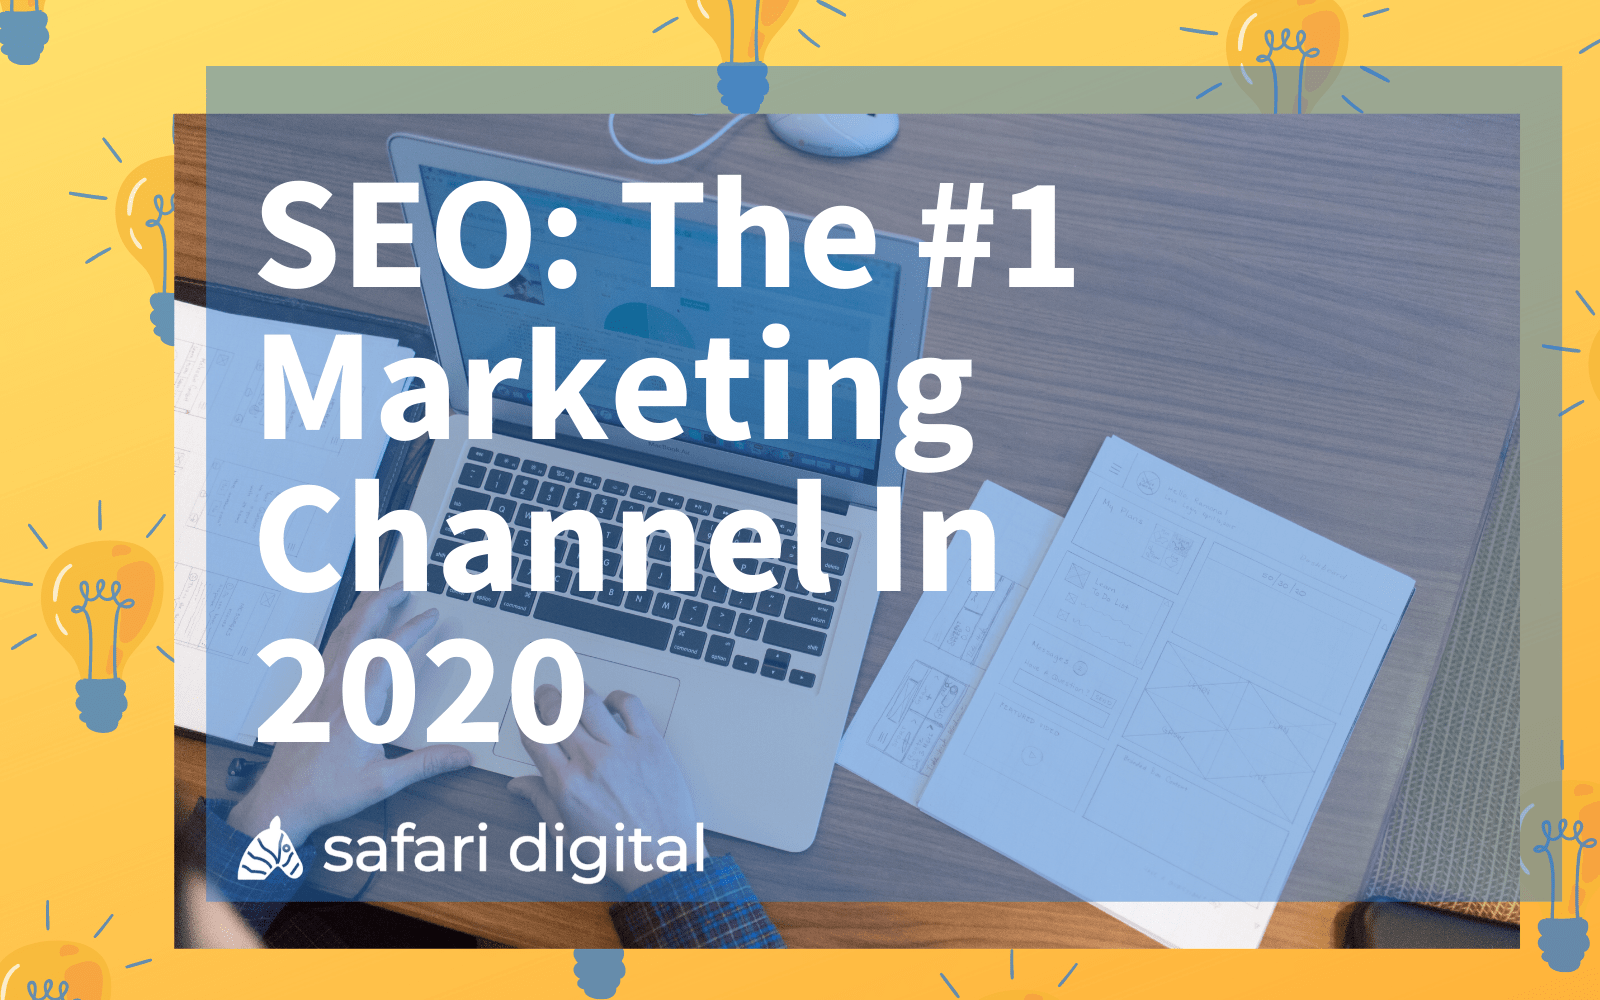 seo is the leading marketing channel in 2020 - cover image large